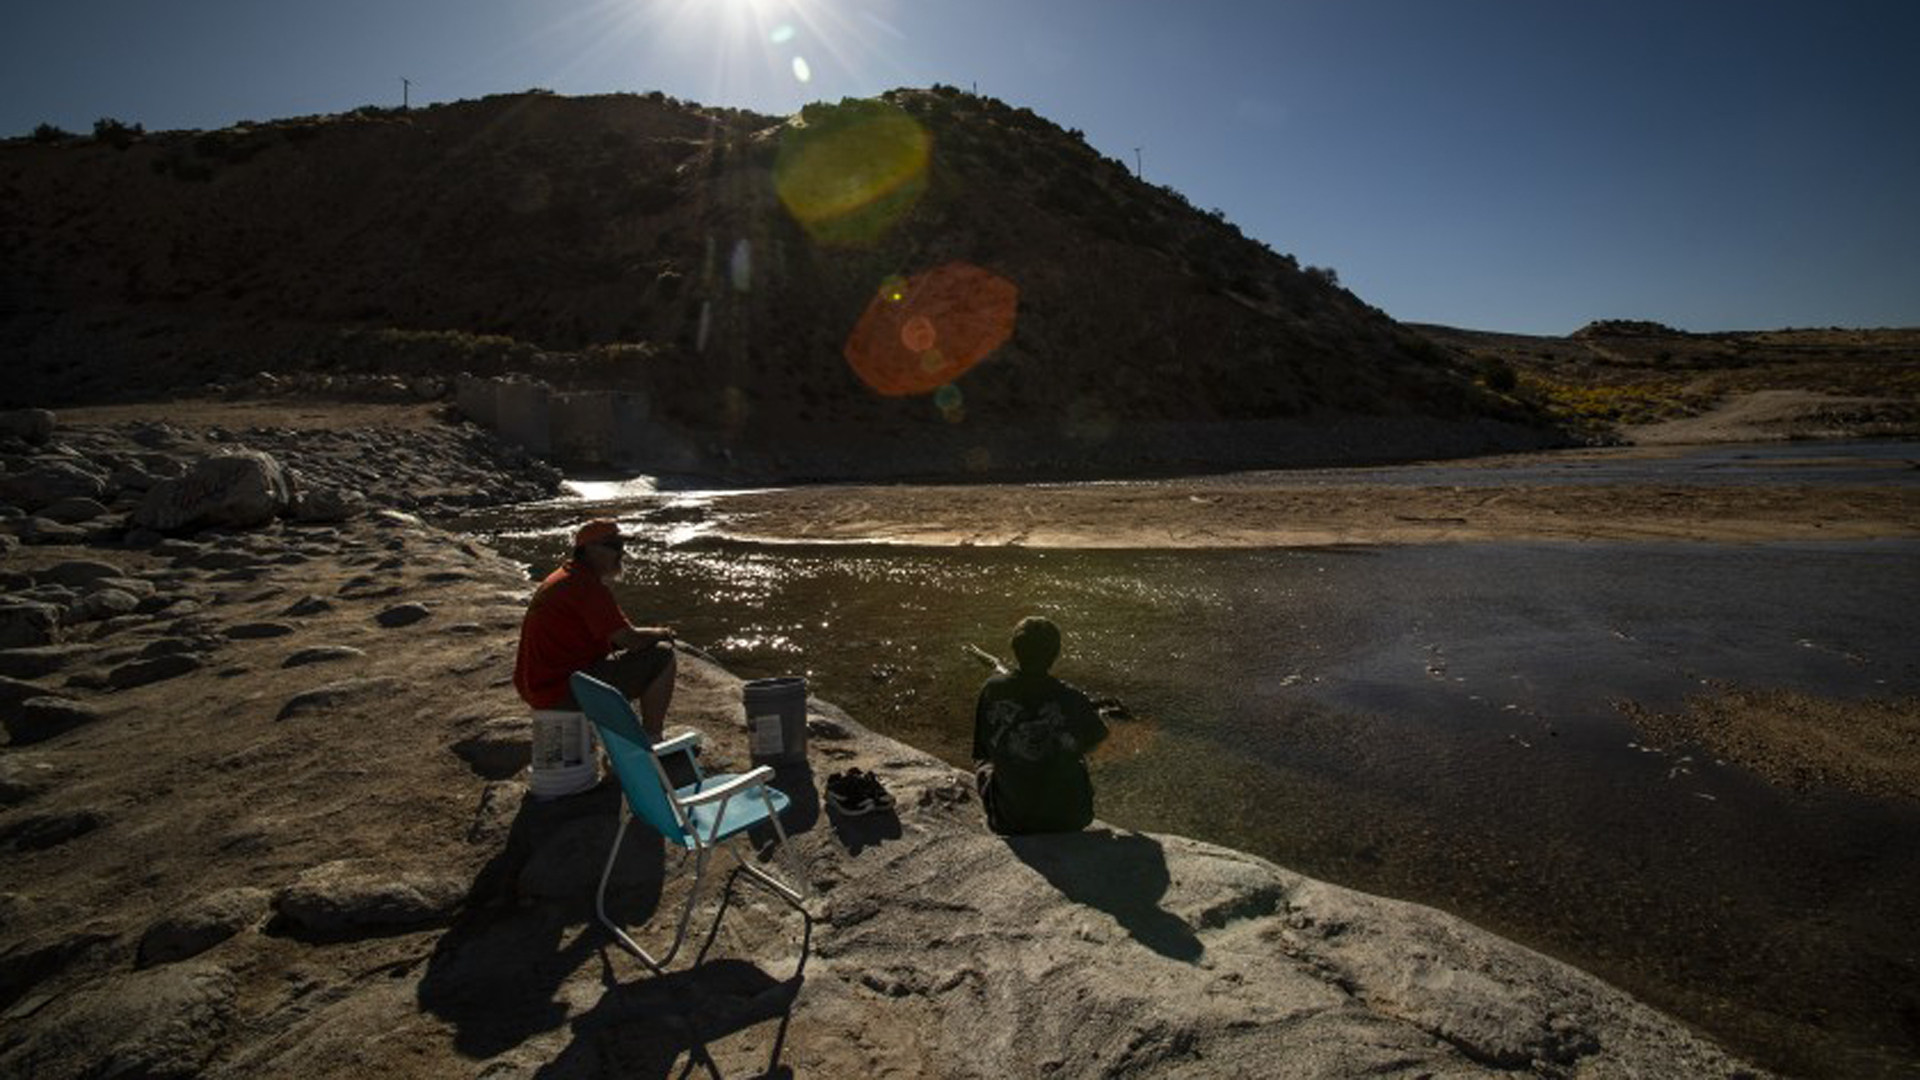 Victorville residents Charles Pritchett, left, and Kyle Carroll enjoy the solitude of the Mojave River just downstream from the Mojave River Dam on Nov. 5, 2019.(Credit: Gina Ferazzi/Los Angeles Times)